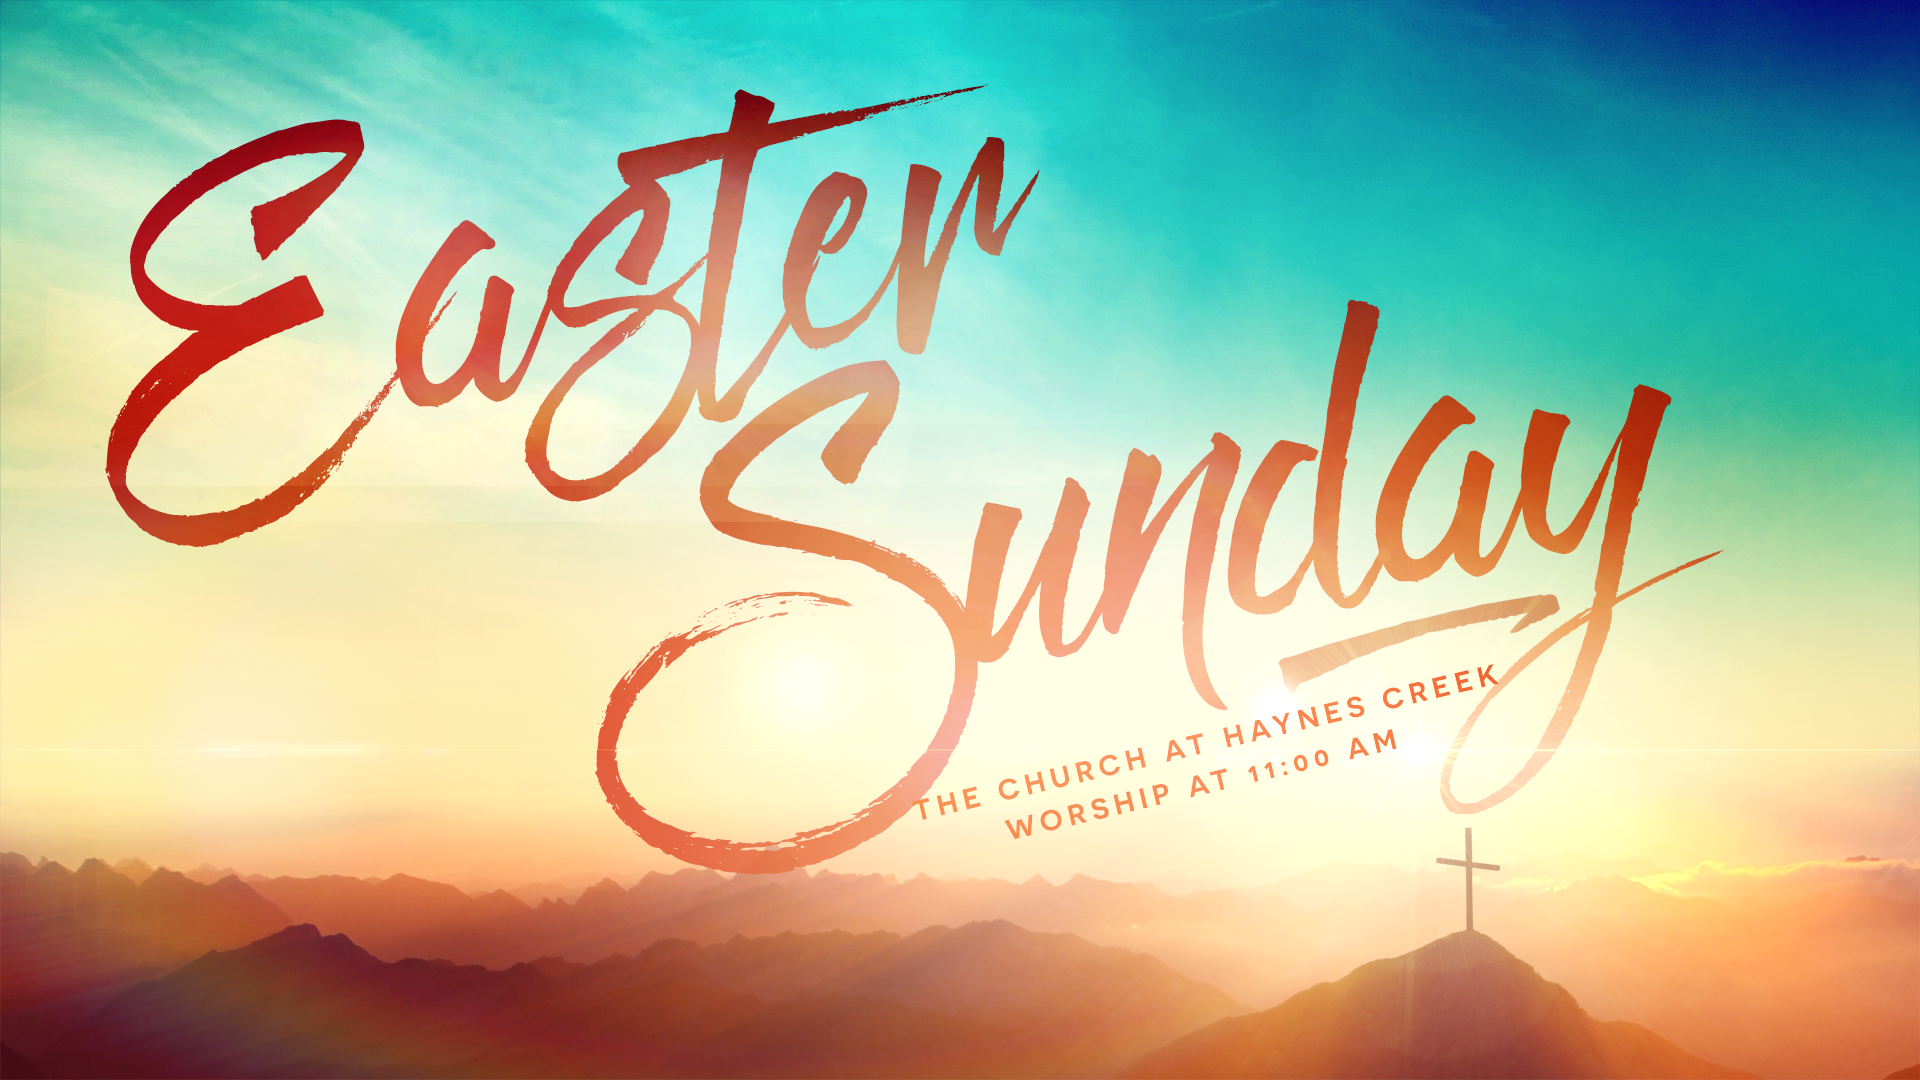 Risen%20Easter%20Sunday%20Church%20PowerPoint_presentation.png